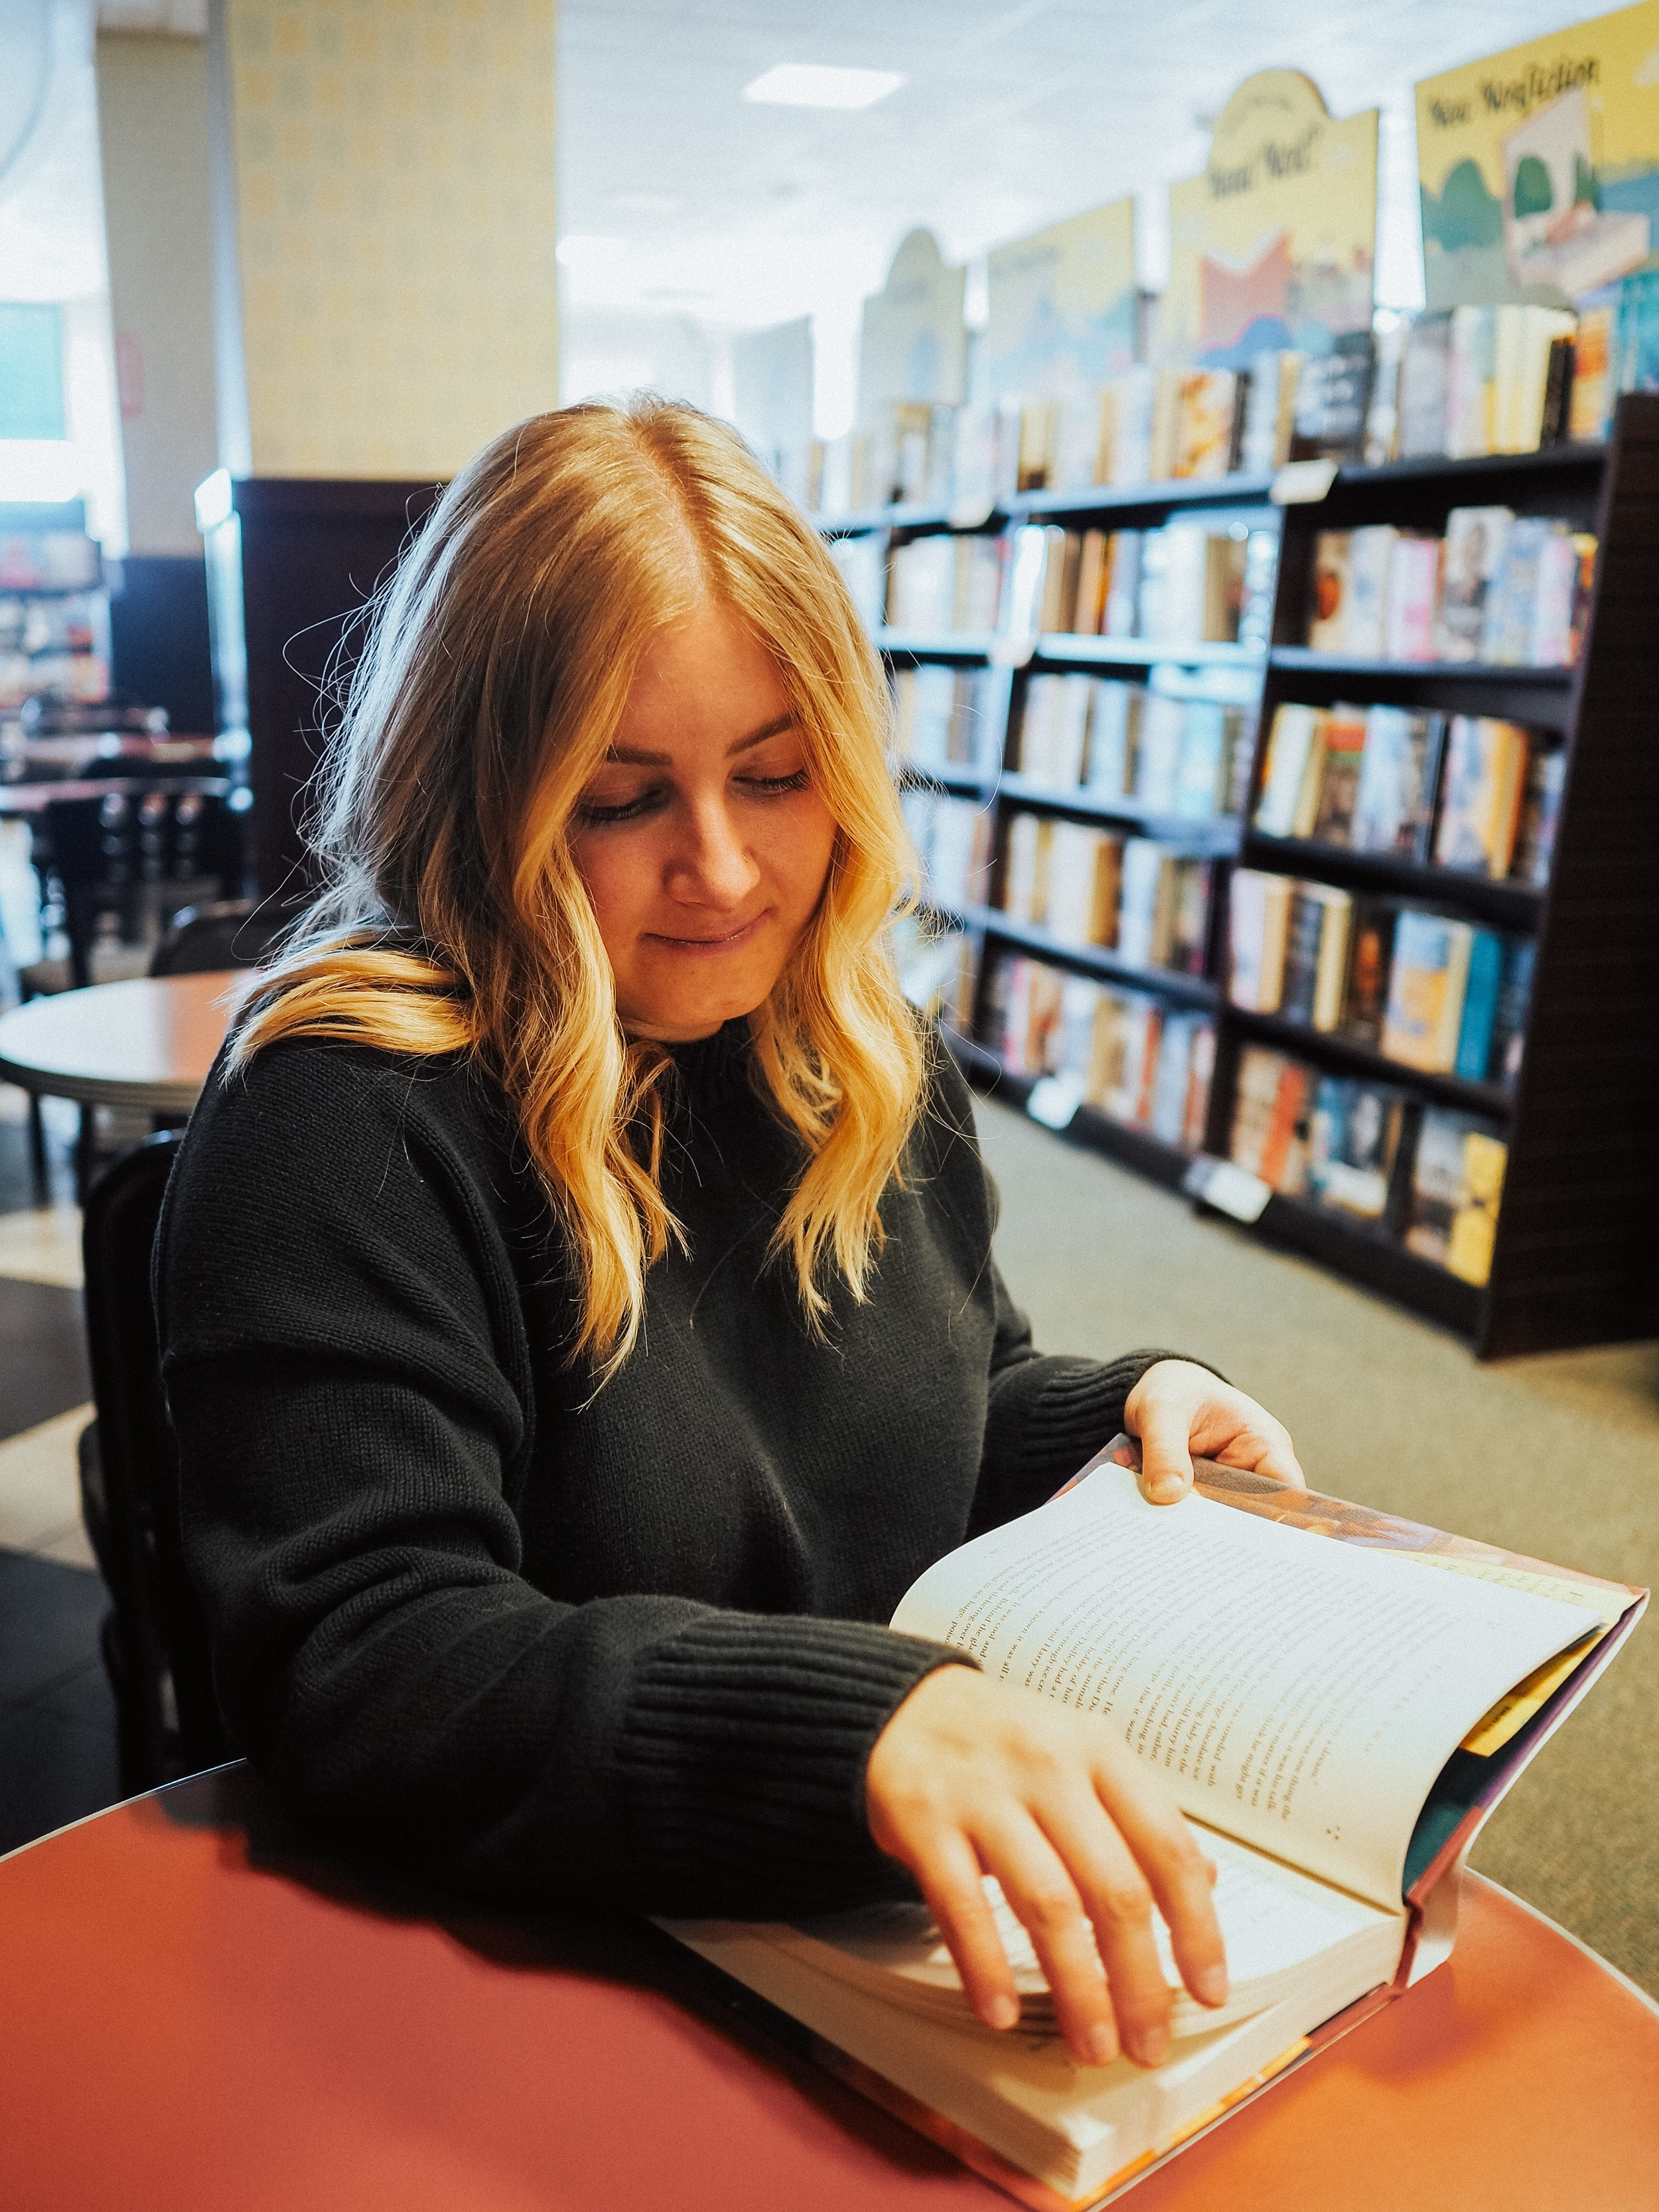 Learn how to be bookish, ramp up your reading habit, and just generally become even more of a reader with these tips and tricks.